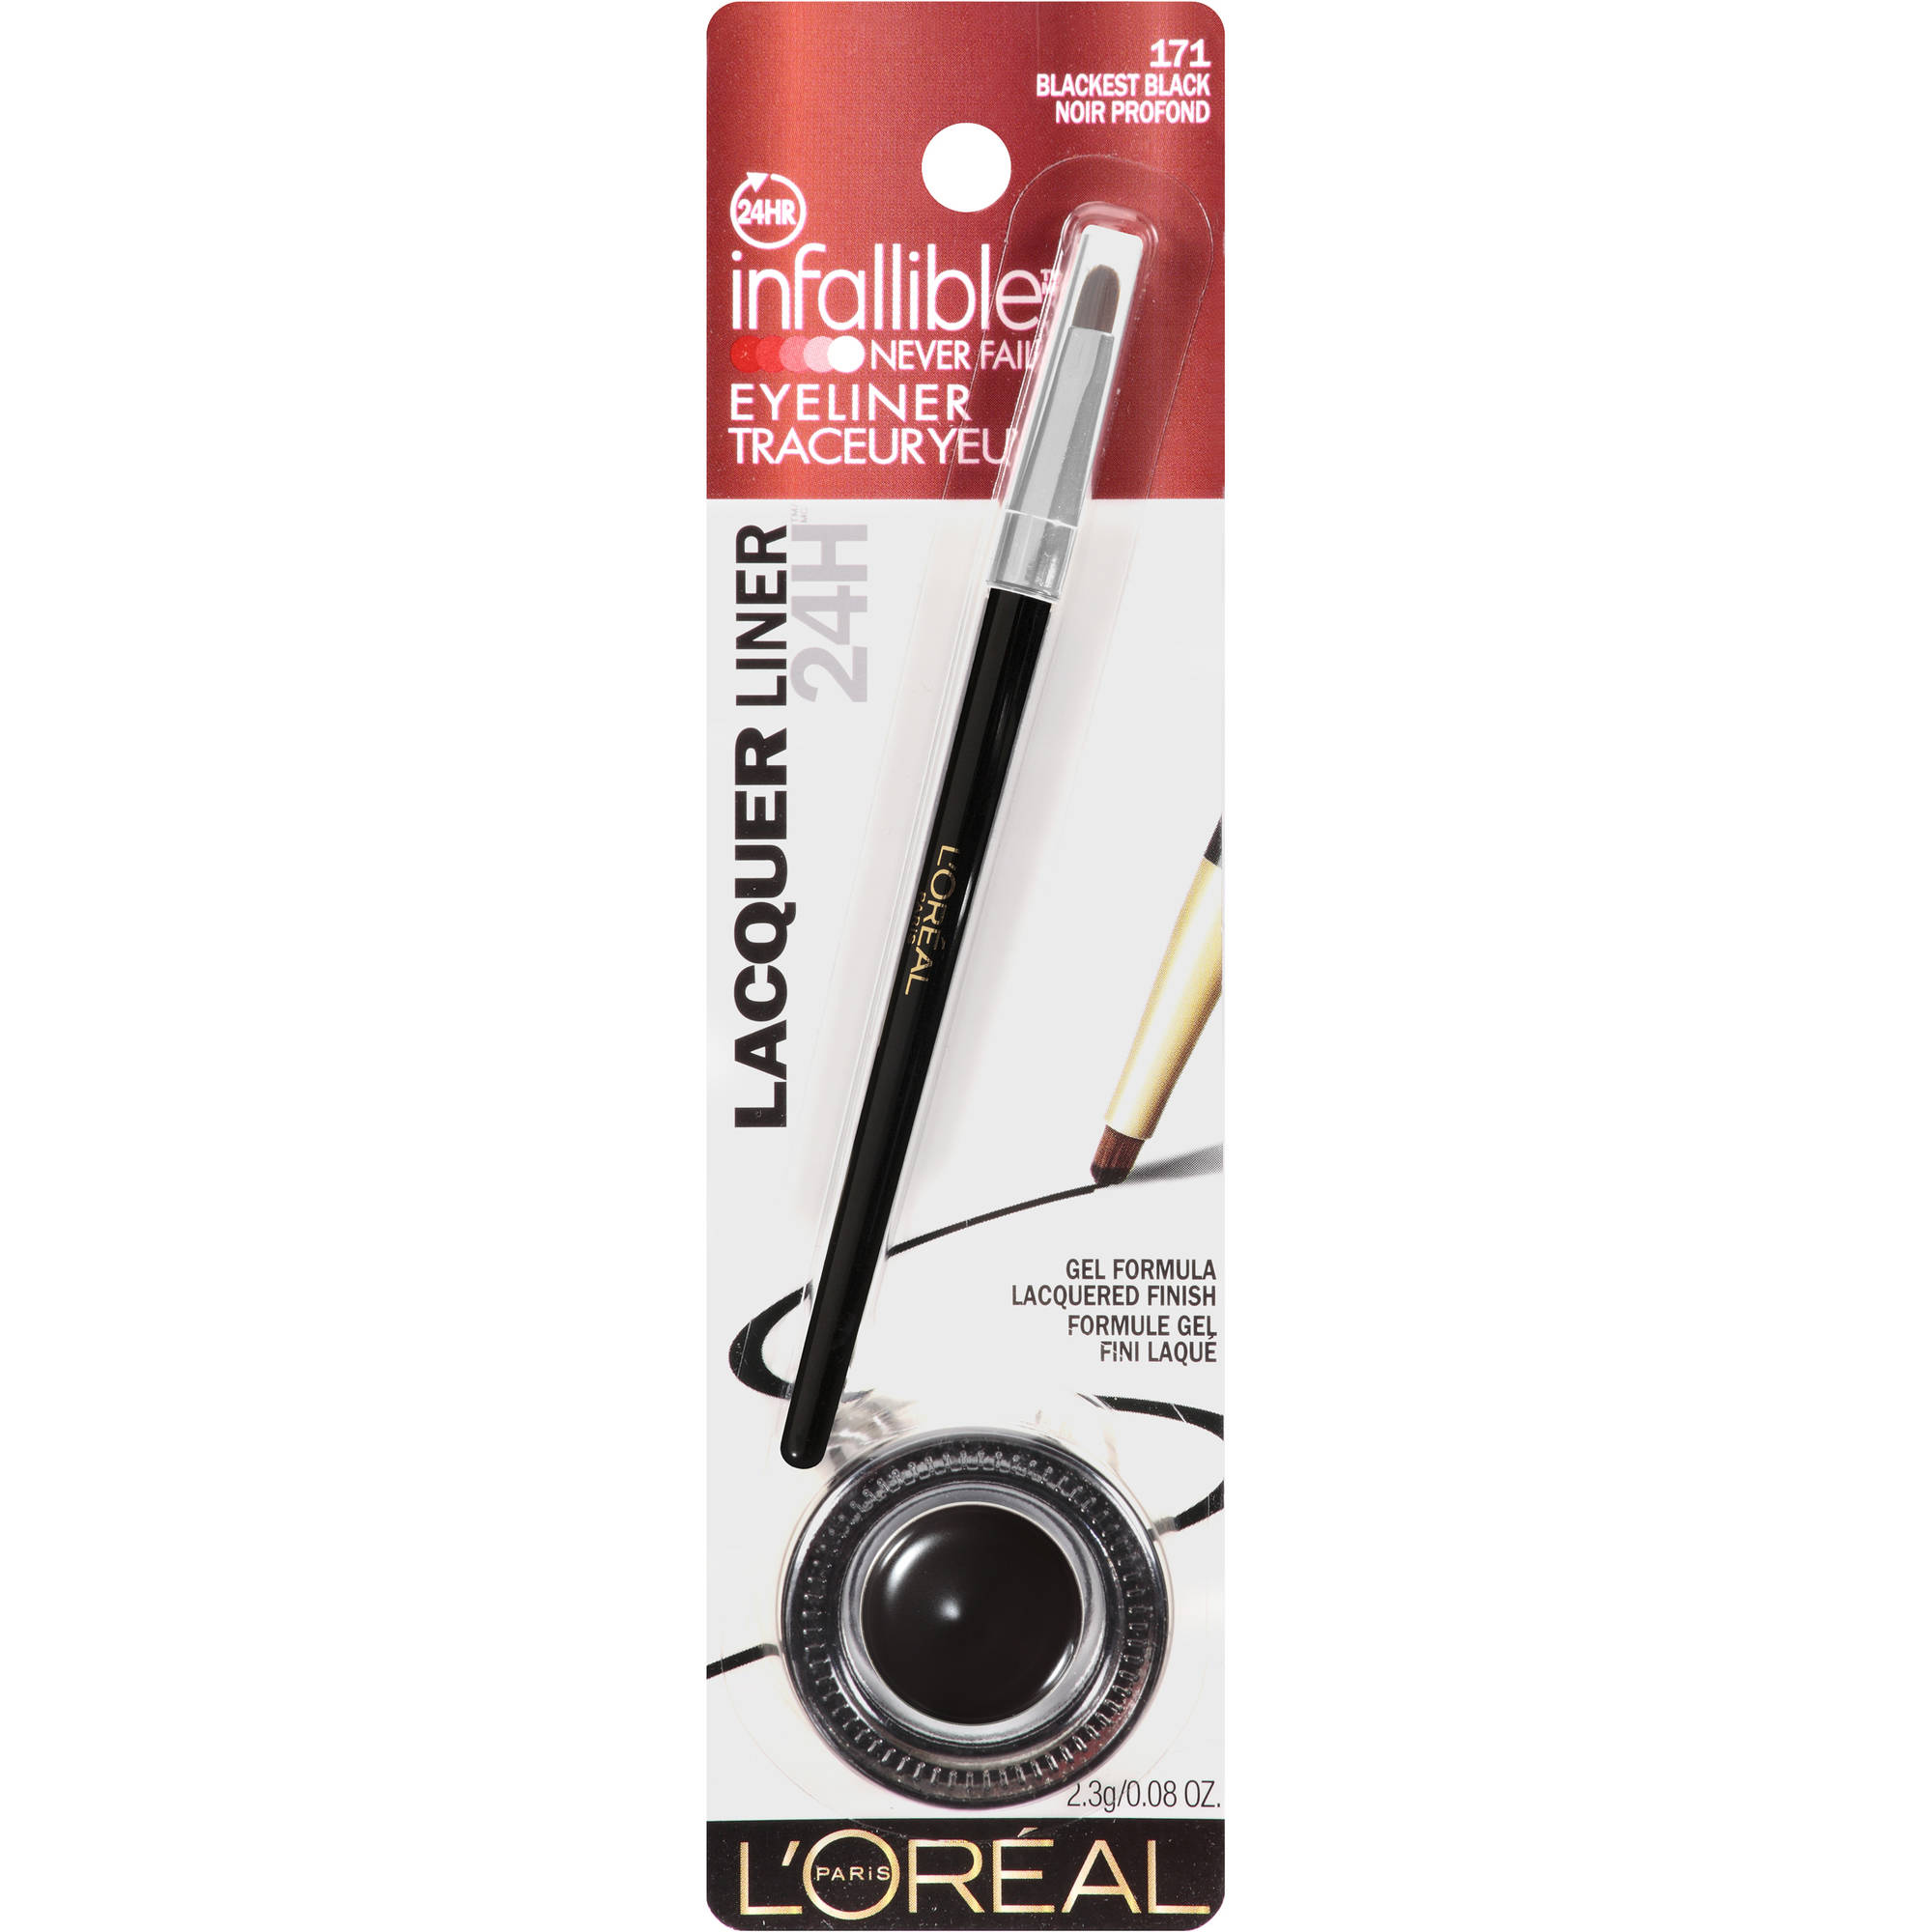 L'Oreal Paris Infallible Lacquer Liner 24H Eyeliner